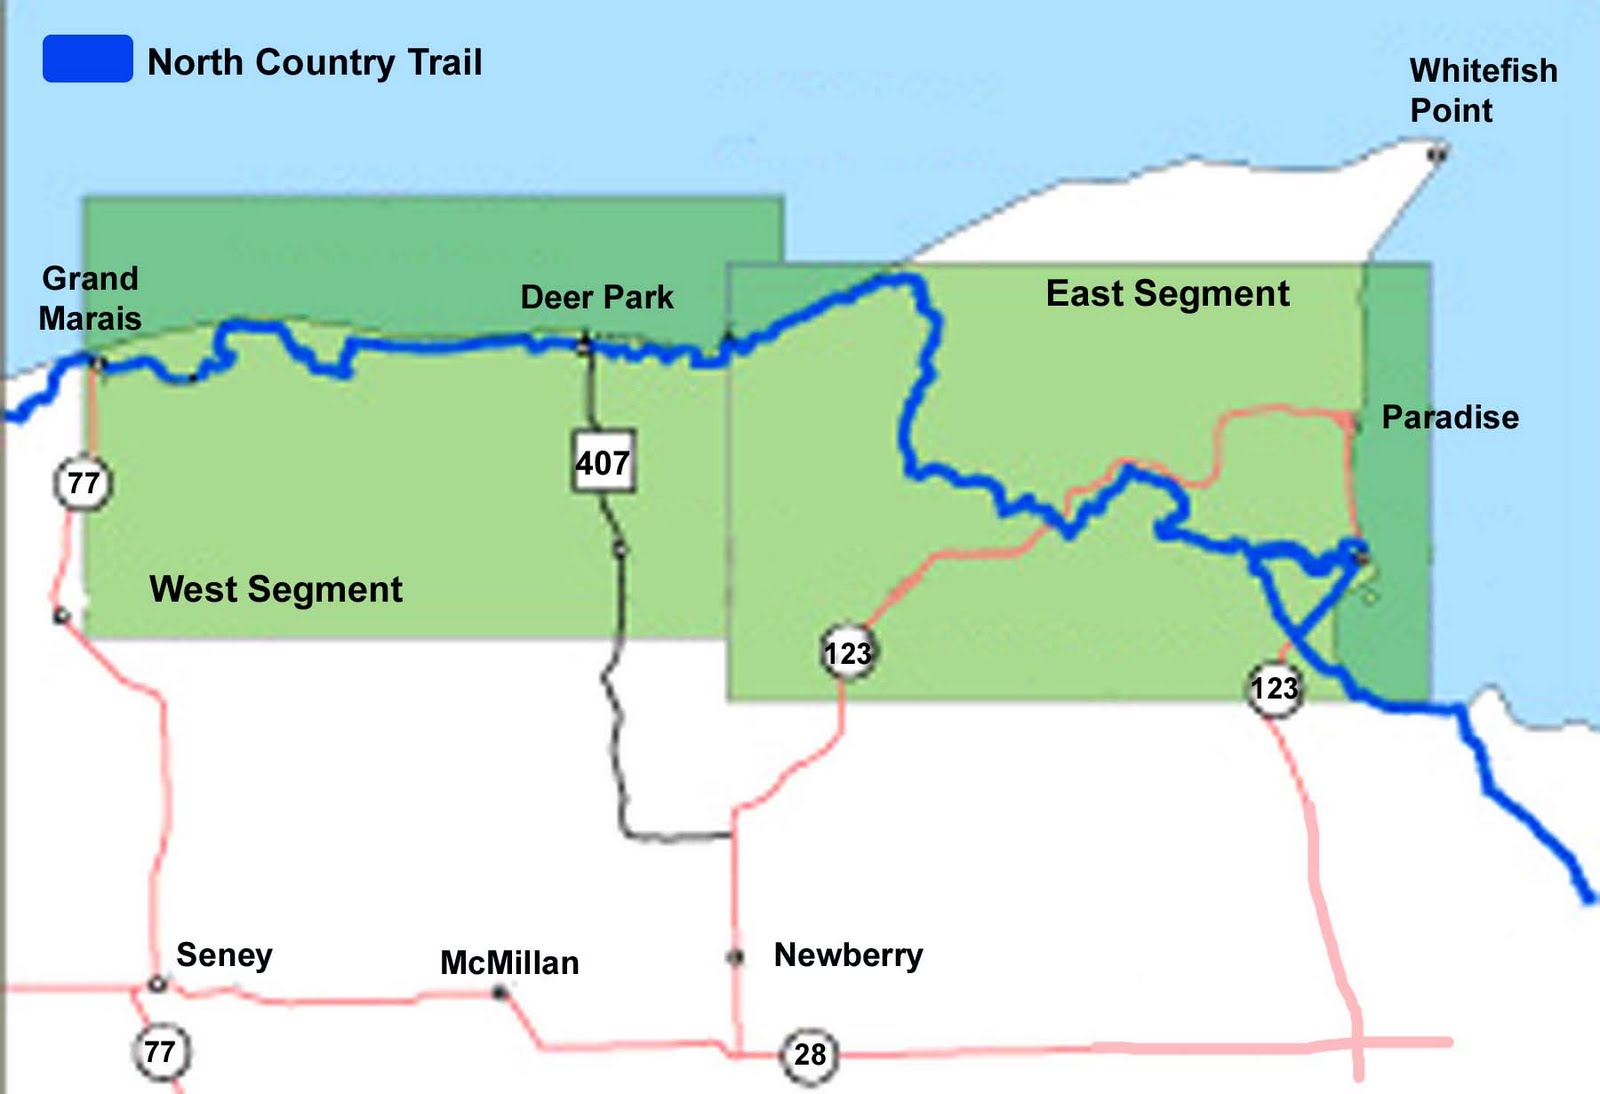 contact informationchapter email sscnorthcountrytrailorg chapterwebsite northcountrytrailorgssc membership join the north country trailassociation. the agatelady adventures and events more information about the